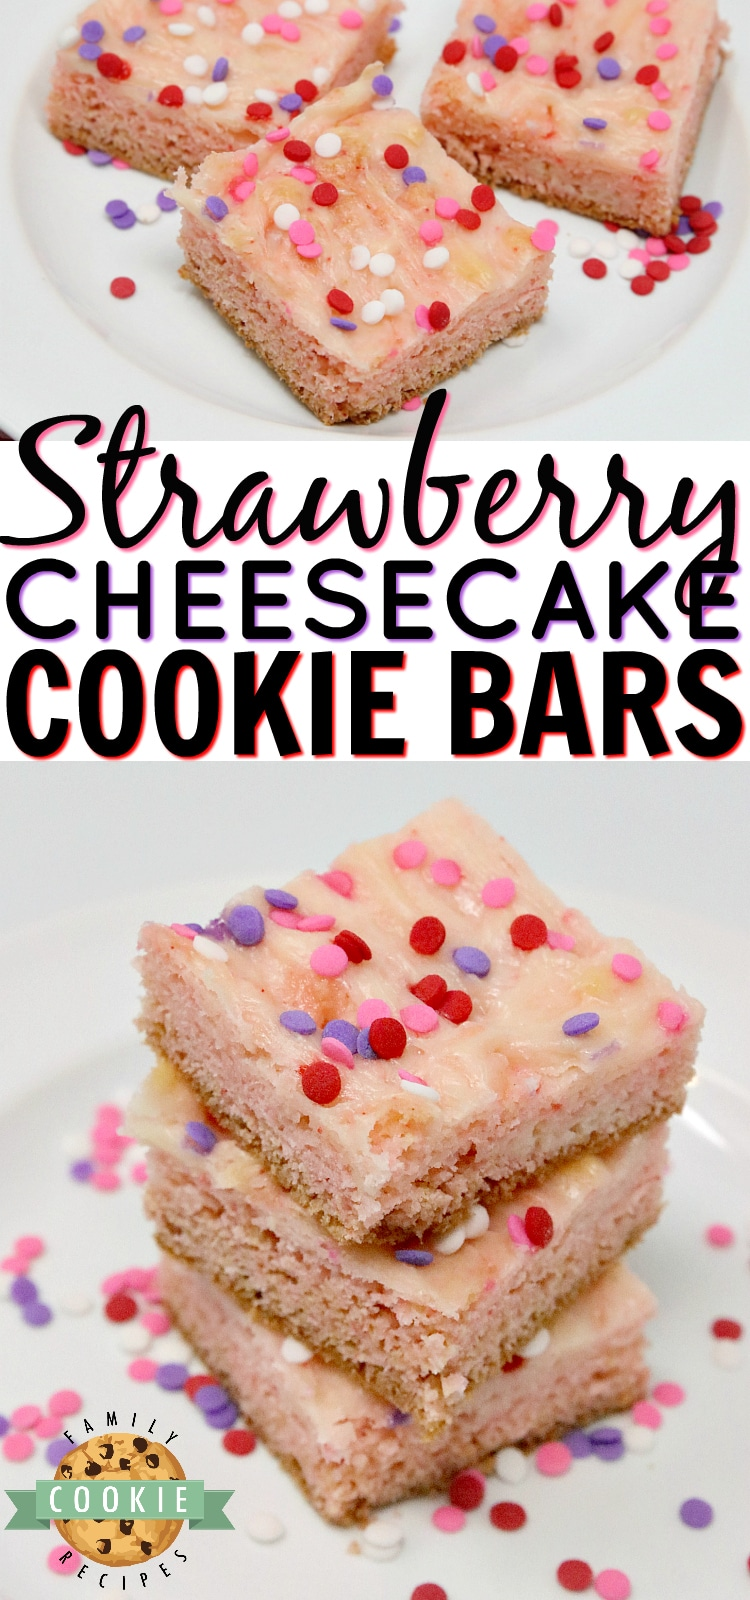 Strawberry Cheesecake Cookie Bars are made with a strawberry cake mix with a simple sweet cream cheese filling swirled in. Only 6 ingredients for these simple cookie bars that are soft, sweet and taste like strawberry cheesecake in cookie form!